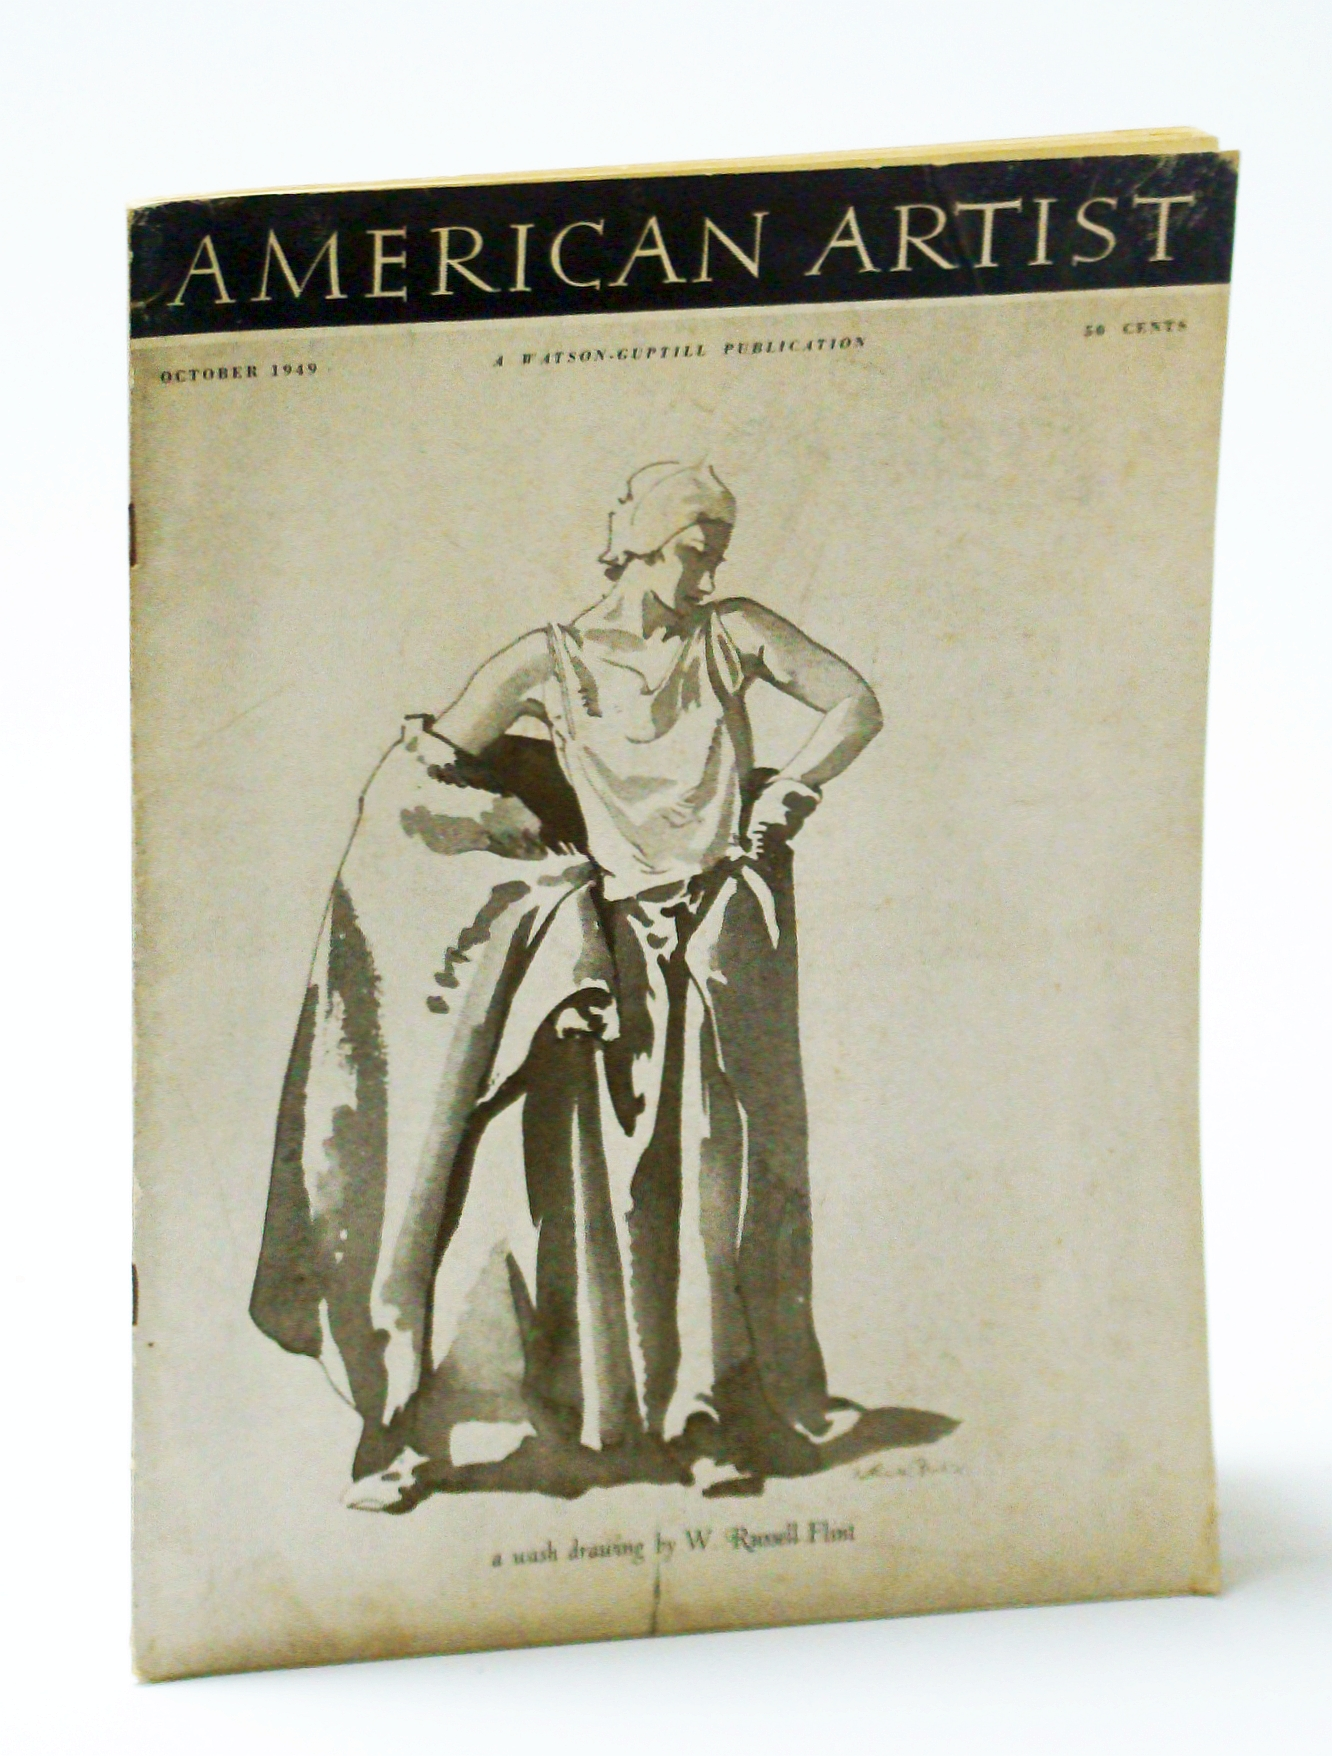 Image for American Artist Magazine, October (Oct.) 1949 - Keith Shaw Williams / Serigraphy